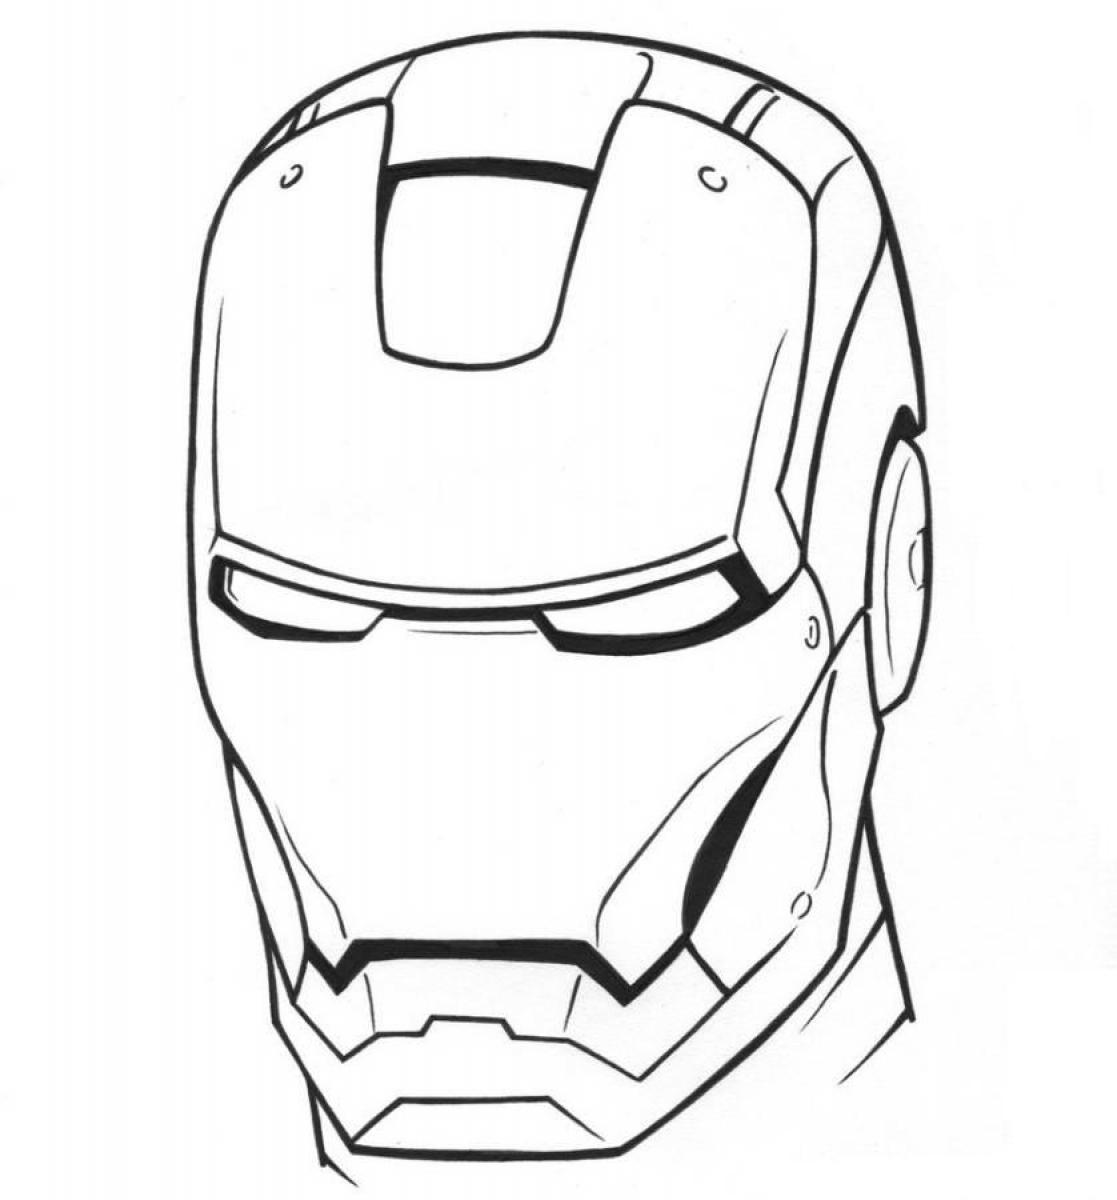 man face coloring pages - photo#18